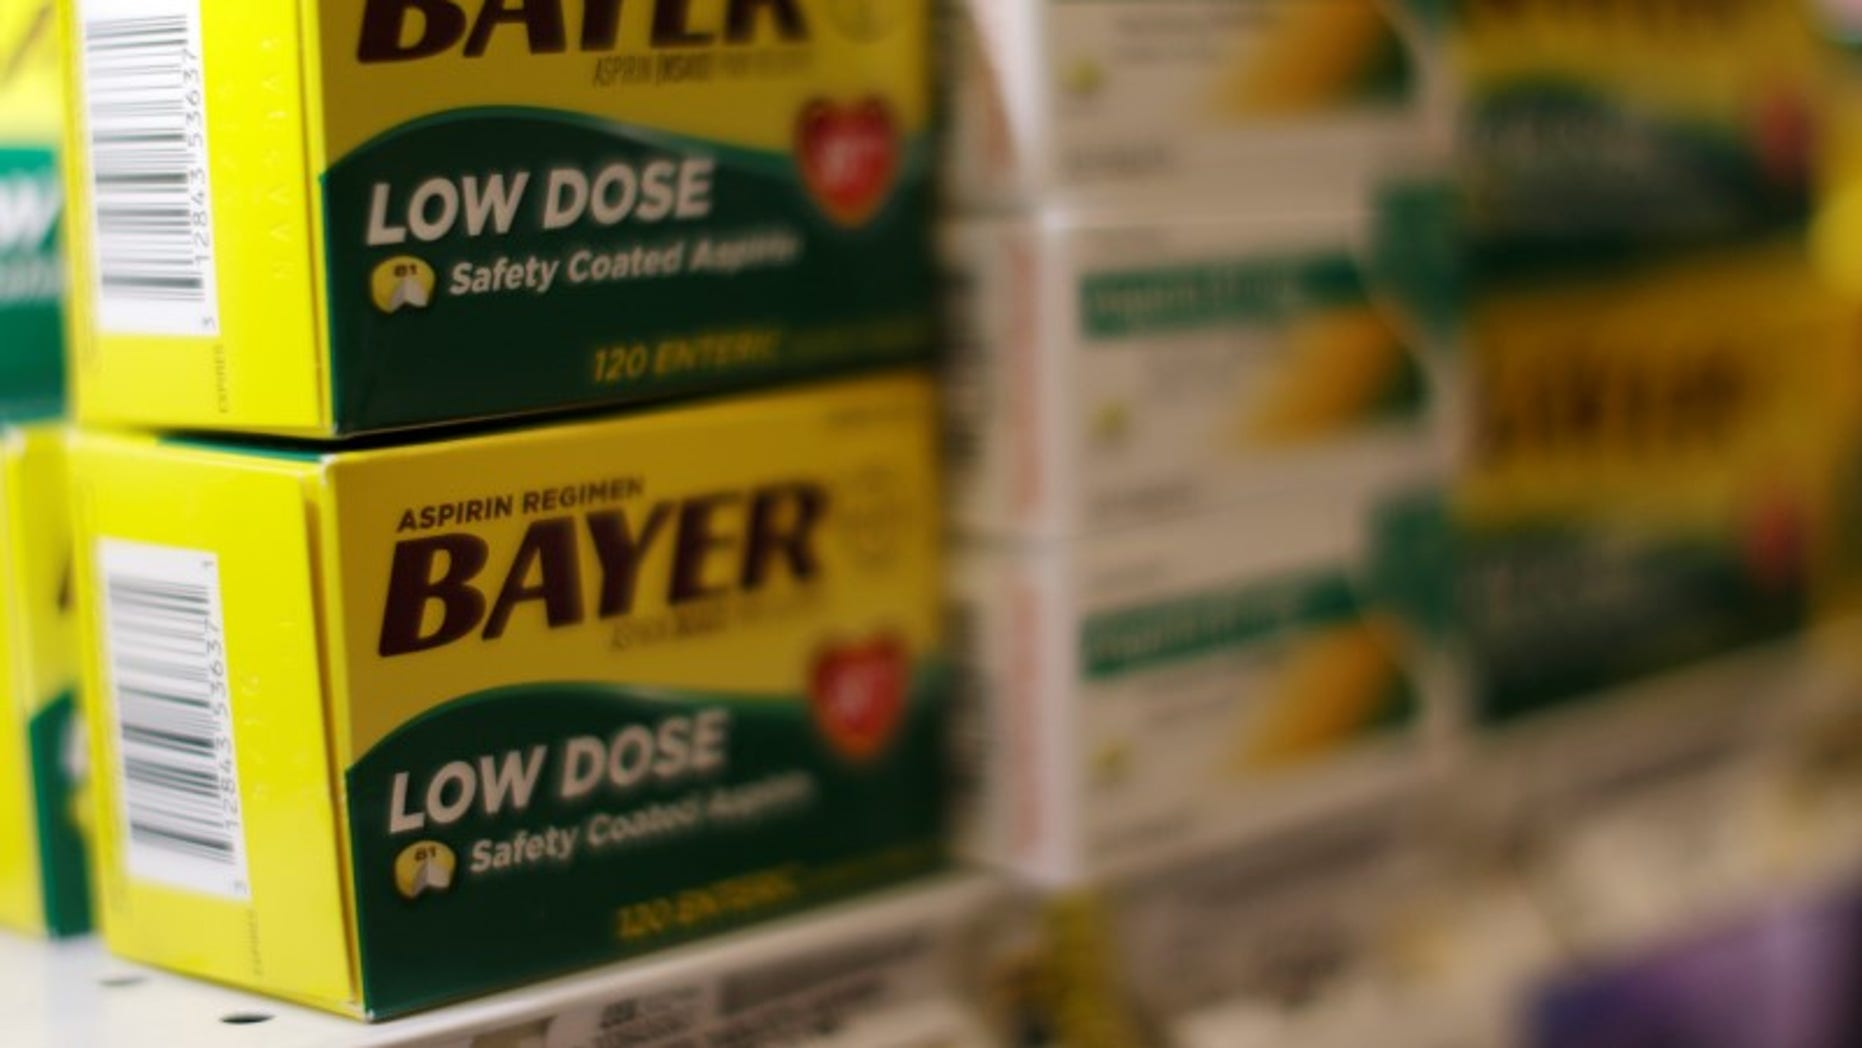 Bayer aspirin is seen at the Safeway store in Wheaton Maryland